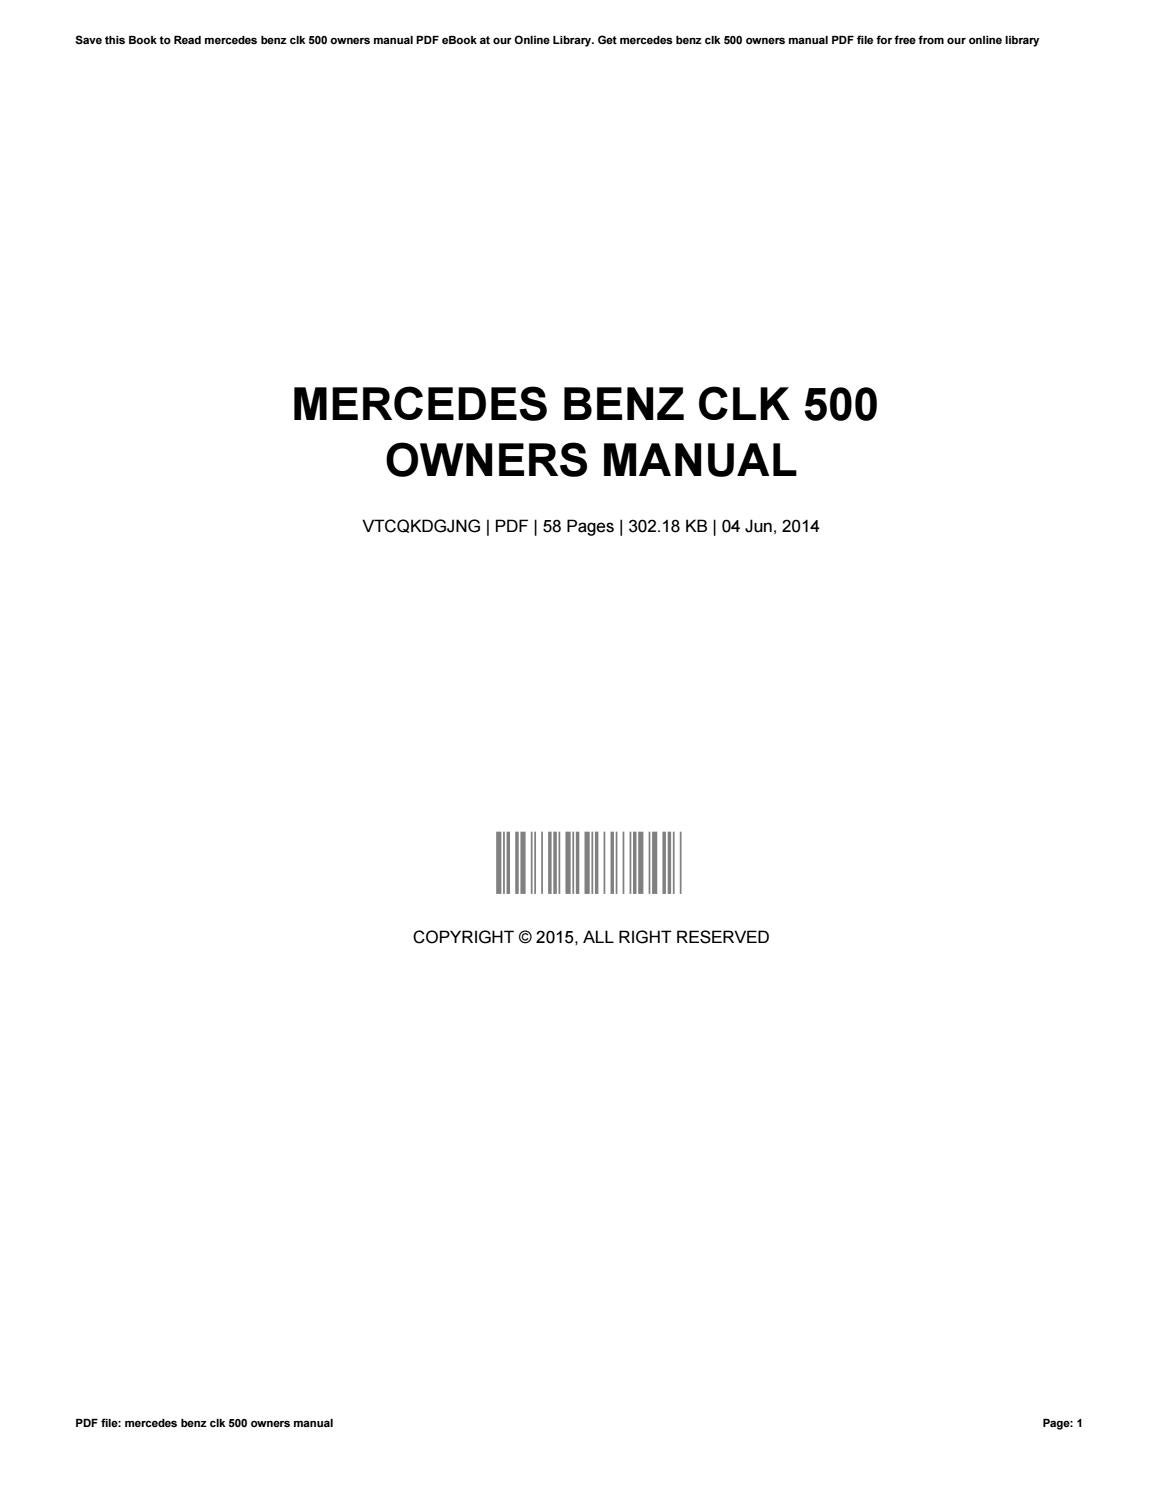 Mercedes Benz Clk 500 Owners Manual Trusted Wiring Diagrams 2005 Fuse Diagram By Mathewcockrell1952 Issuu Rh Com